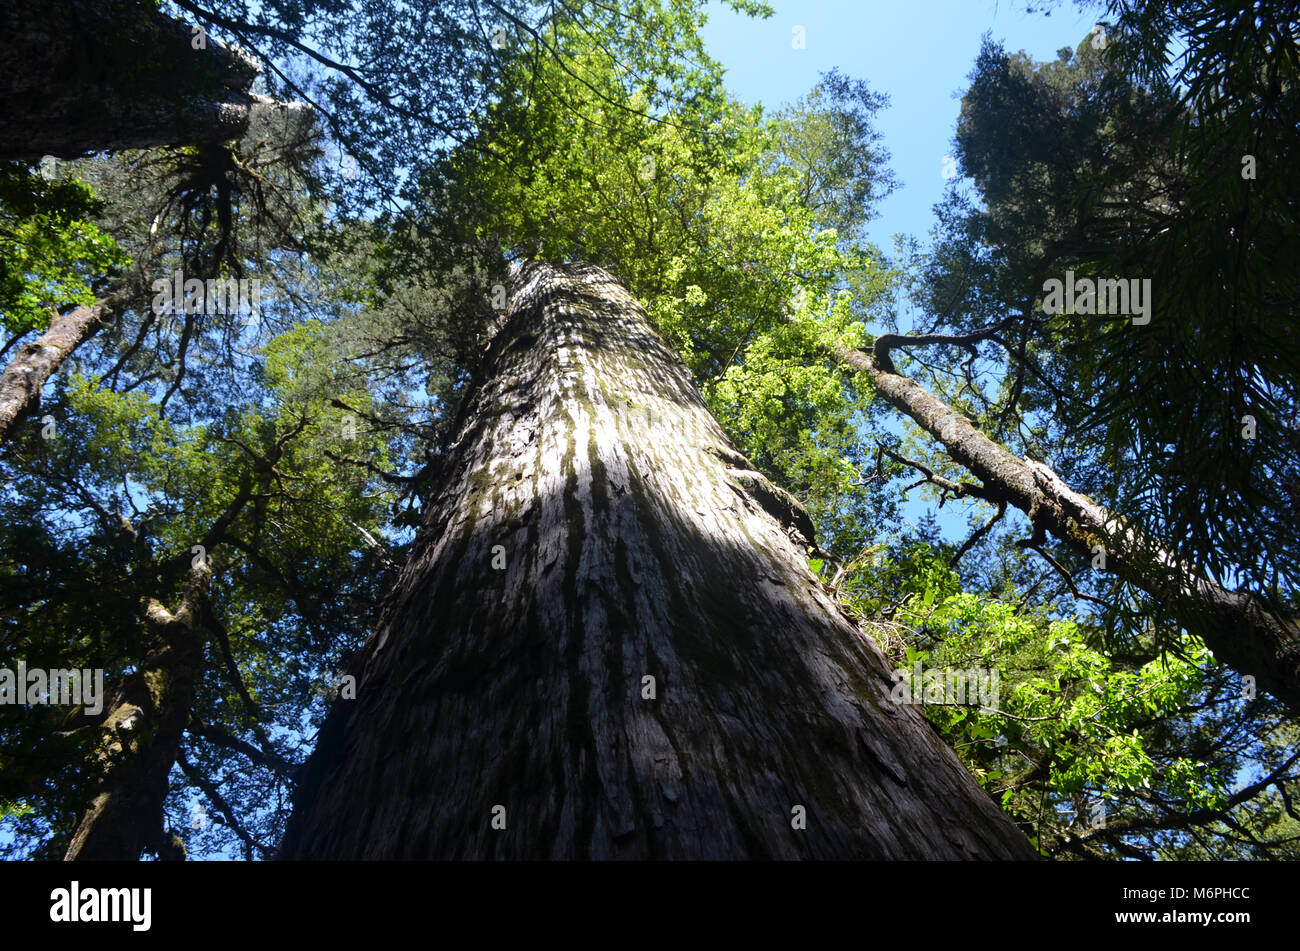 Valdivian temperate rainforests in southern Chile (Chilean Patagonia) - Stock Image